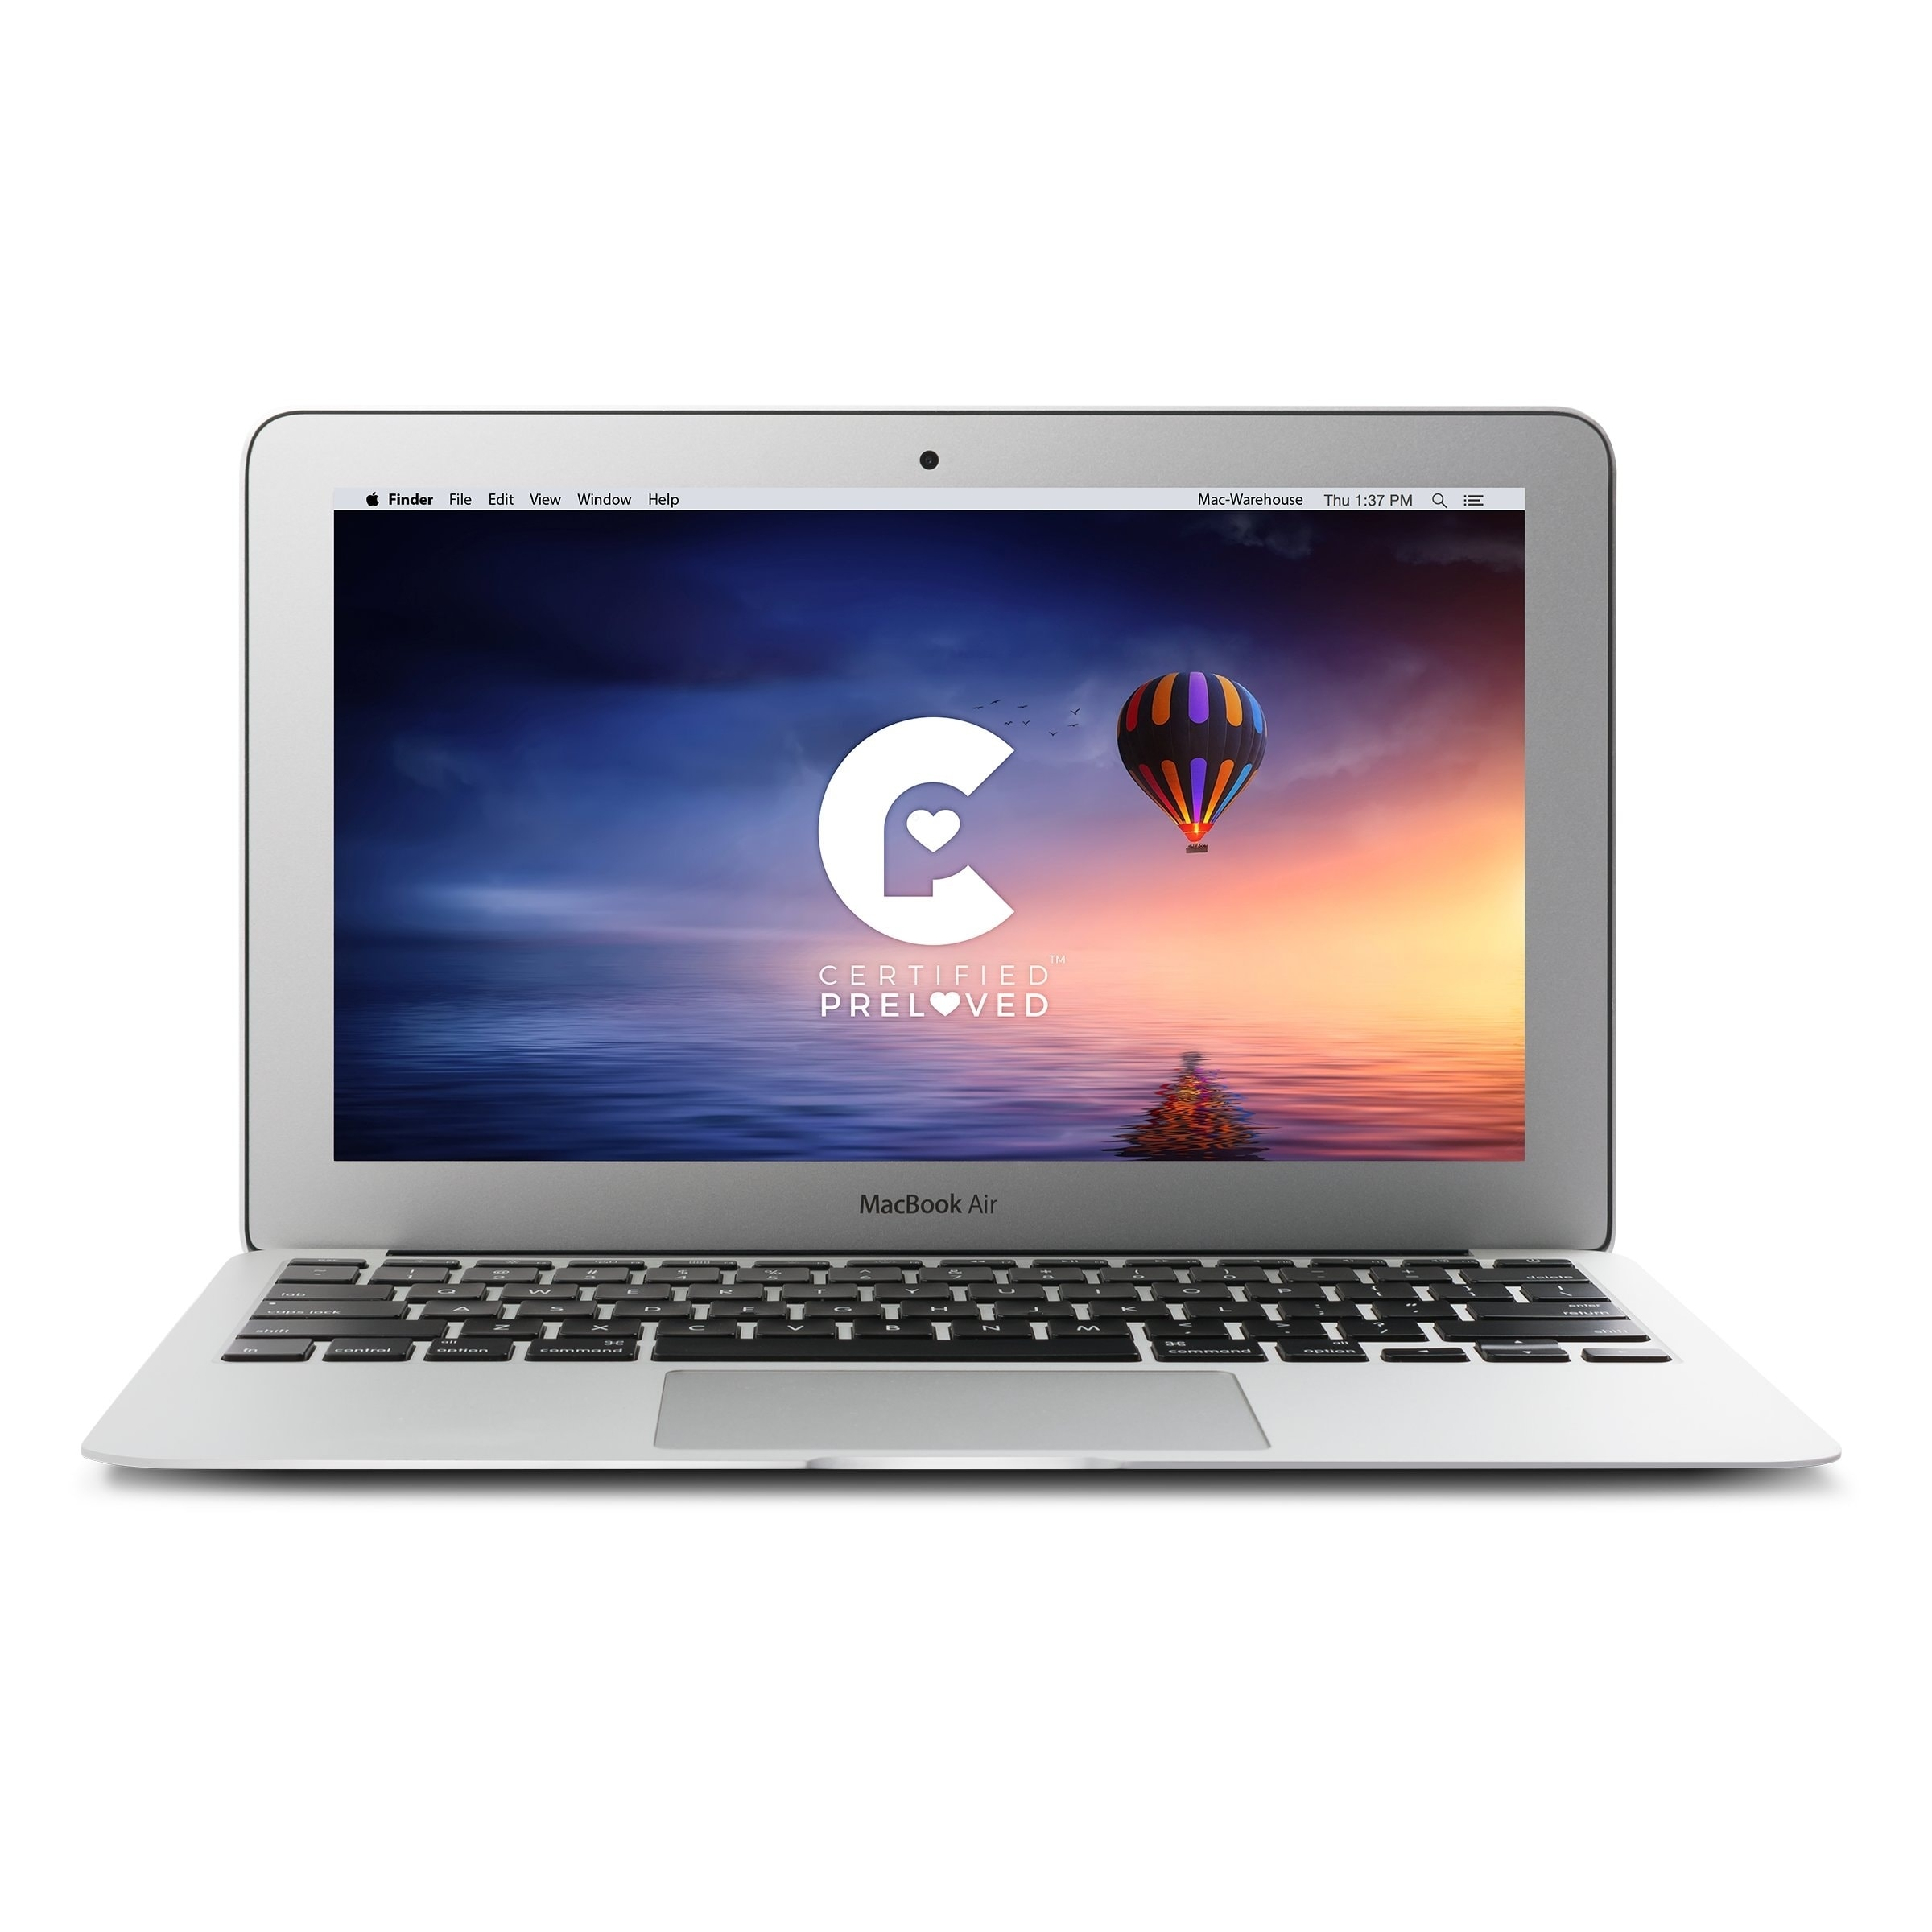 Apple MD711LL/B 11.6 inch MacBook Air DCi5 1.4GHz 8GB RAM - Refurbished by Overstock